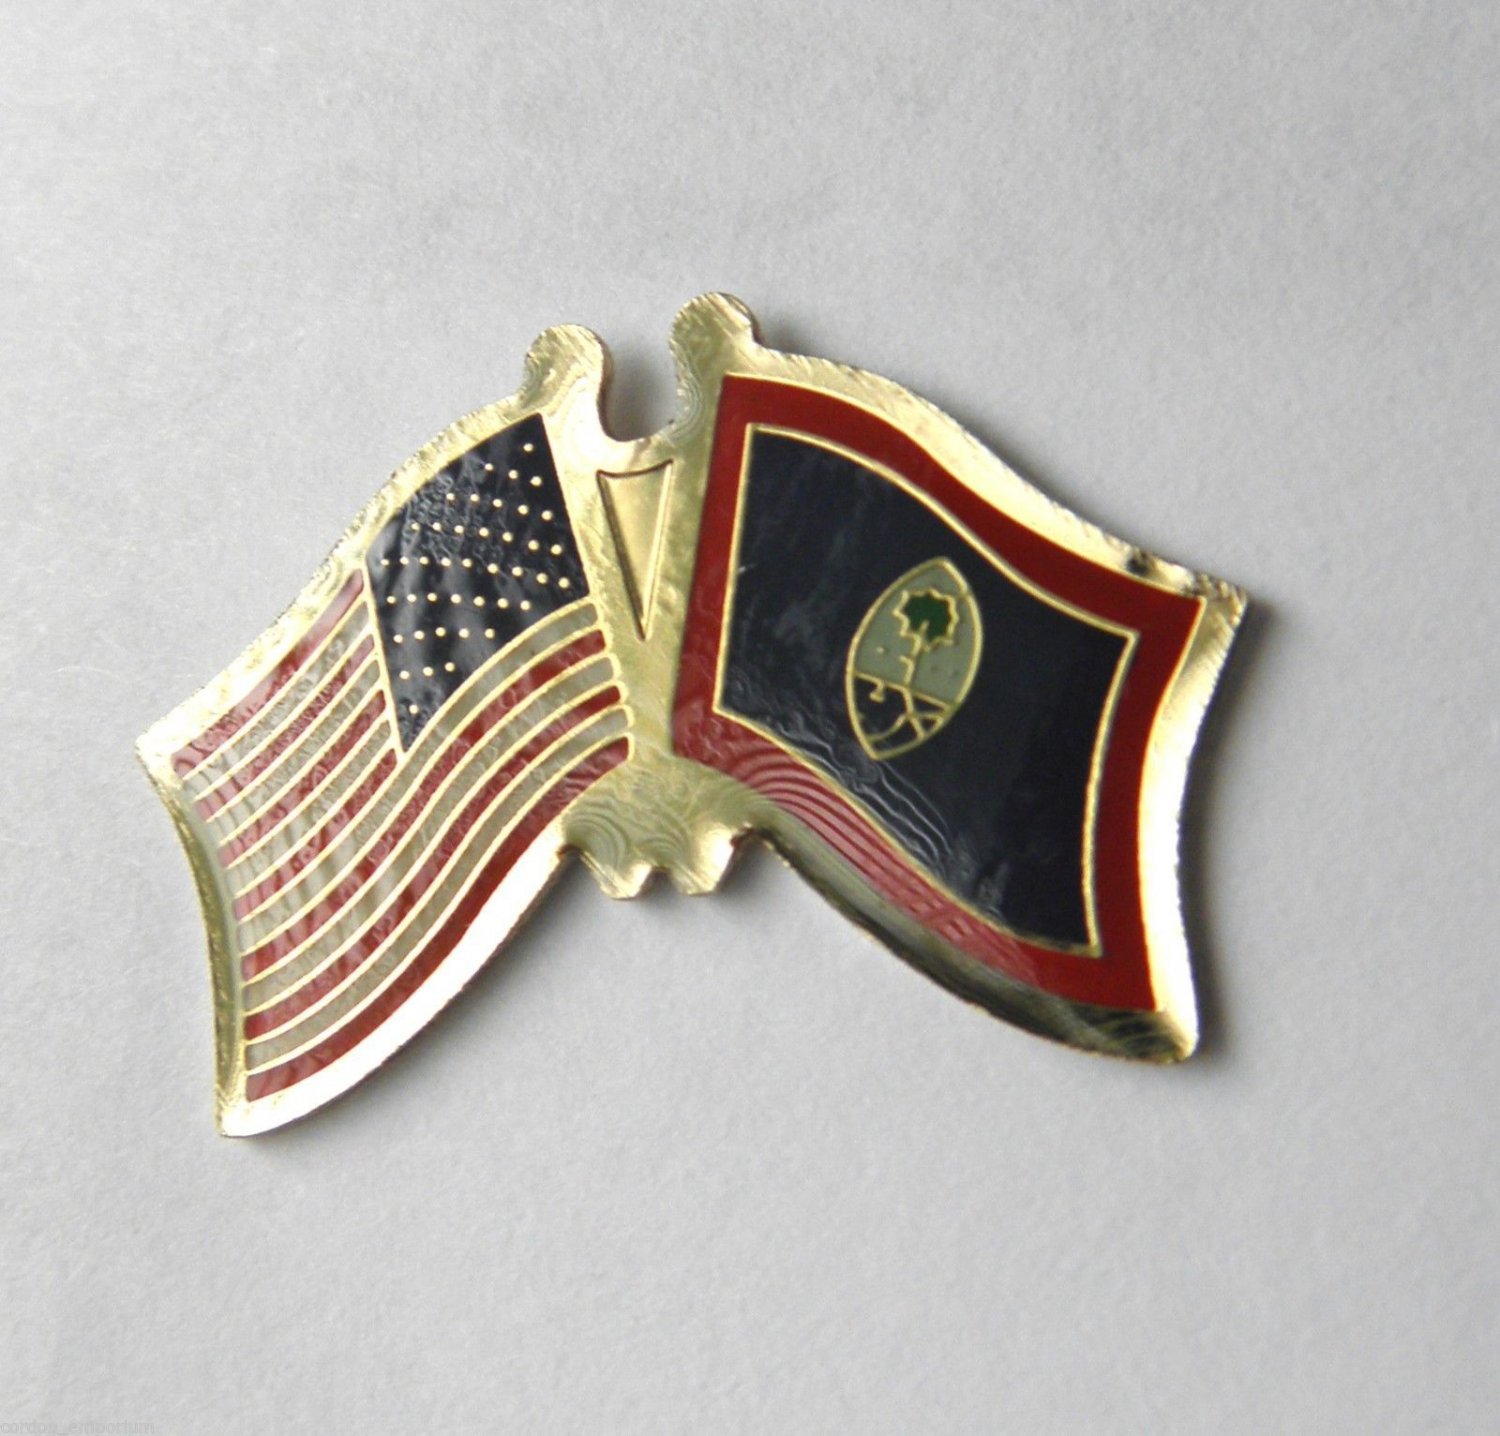 Guam National Country World Flag Combo Lapel Pin Badge 3/4 Inch